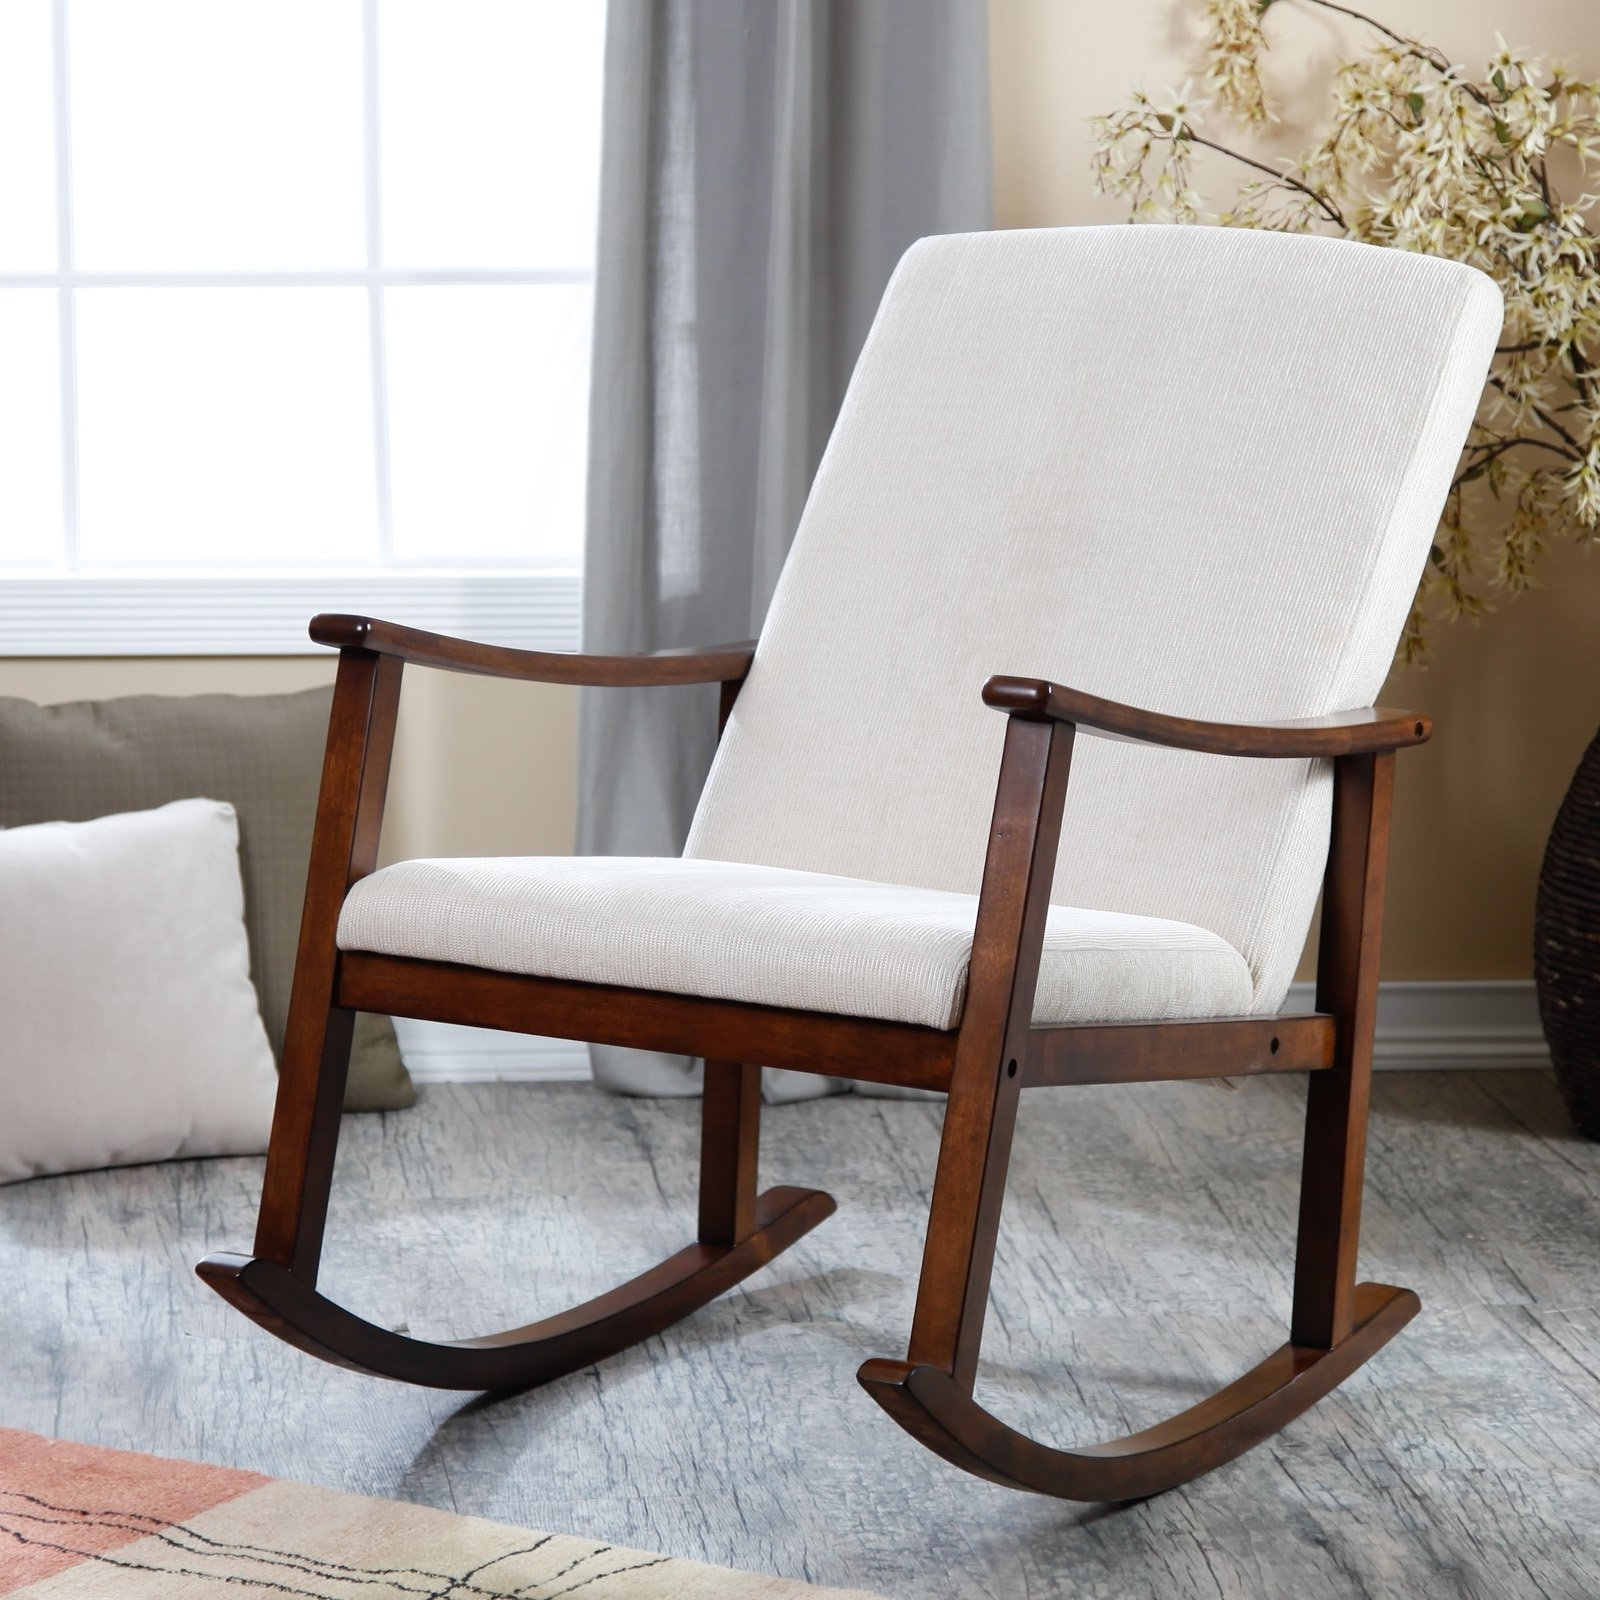 Living Room Furniture : Rocking Chairs For Baby Nursery Wooden Inside Trendy Rocking Chairs For Nursing (View 8 of 20)